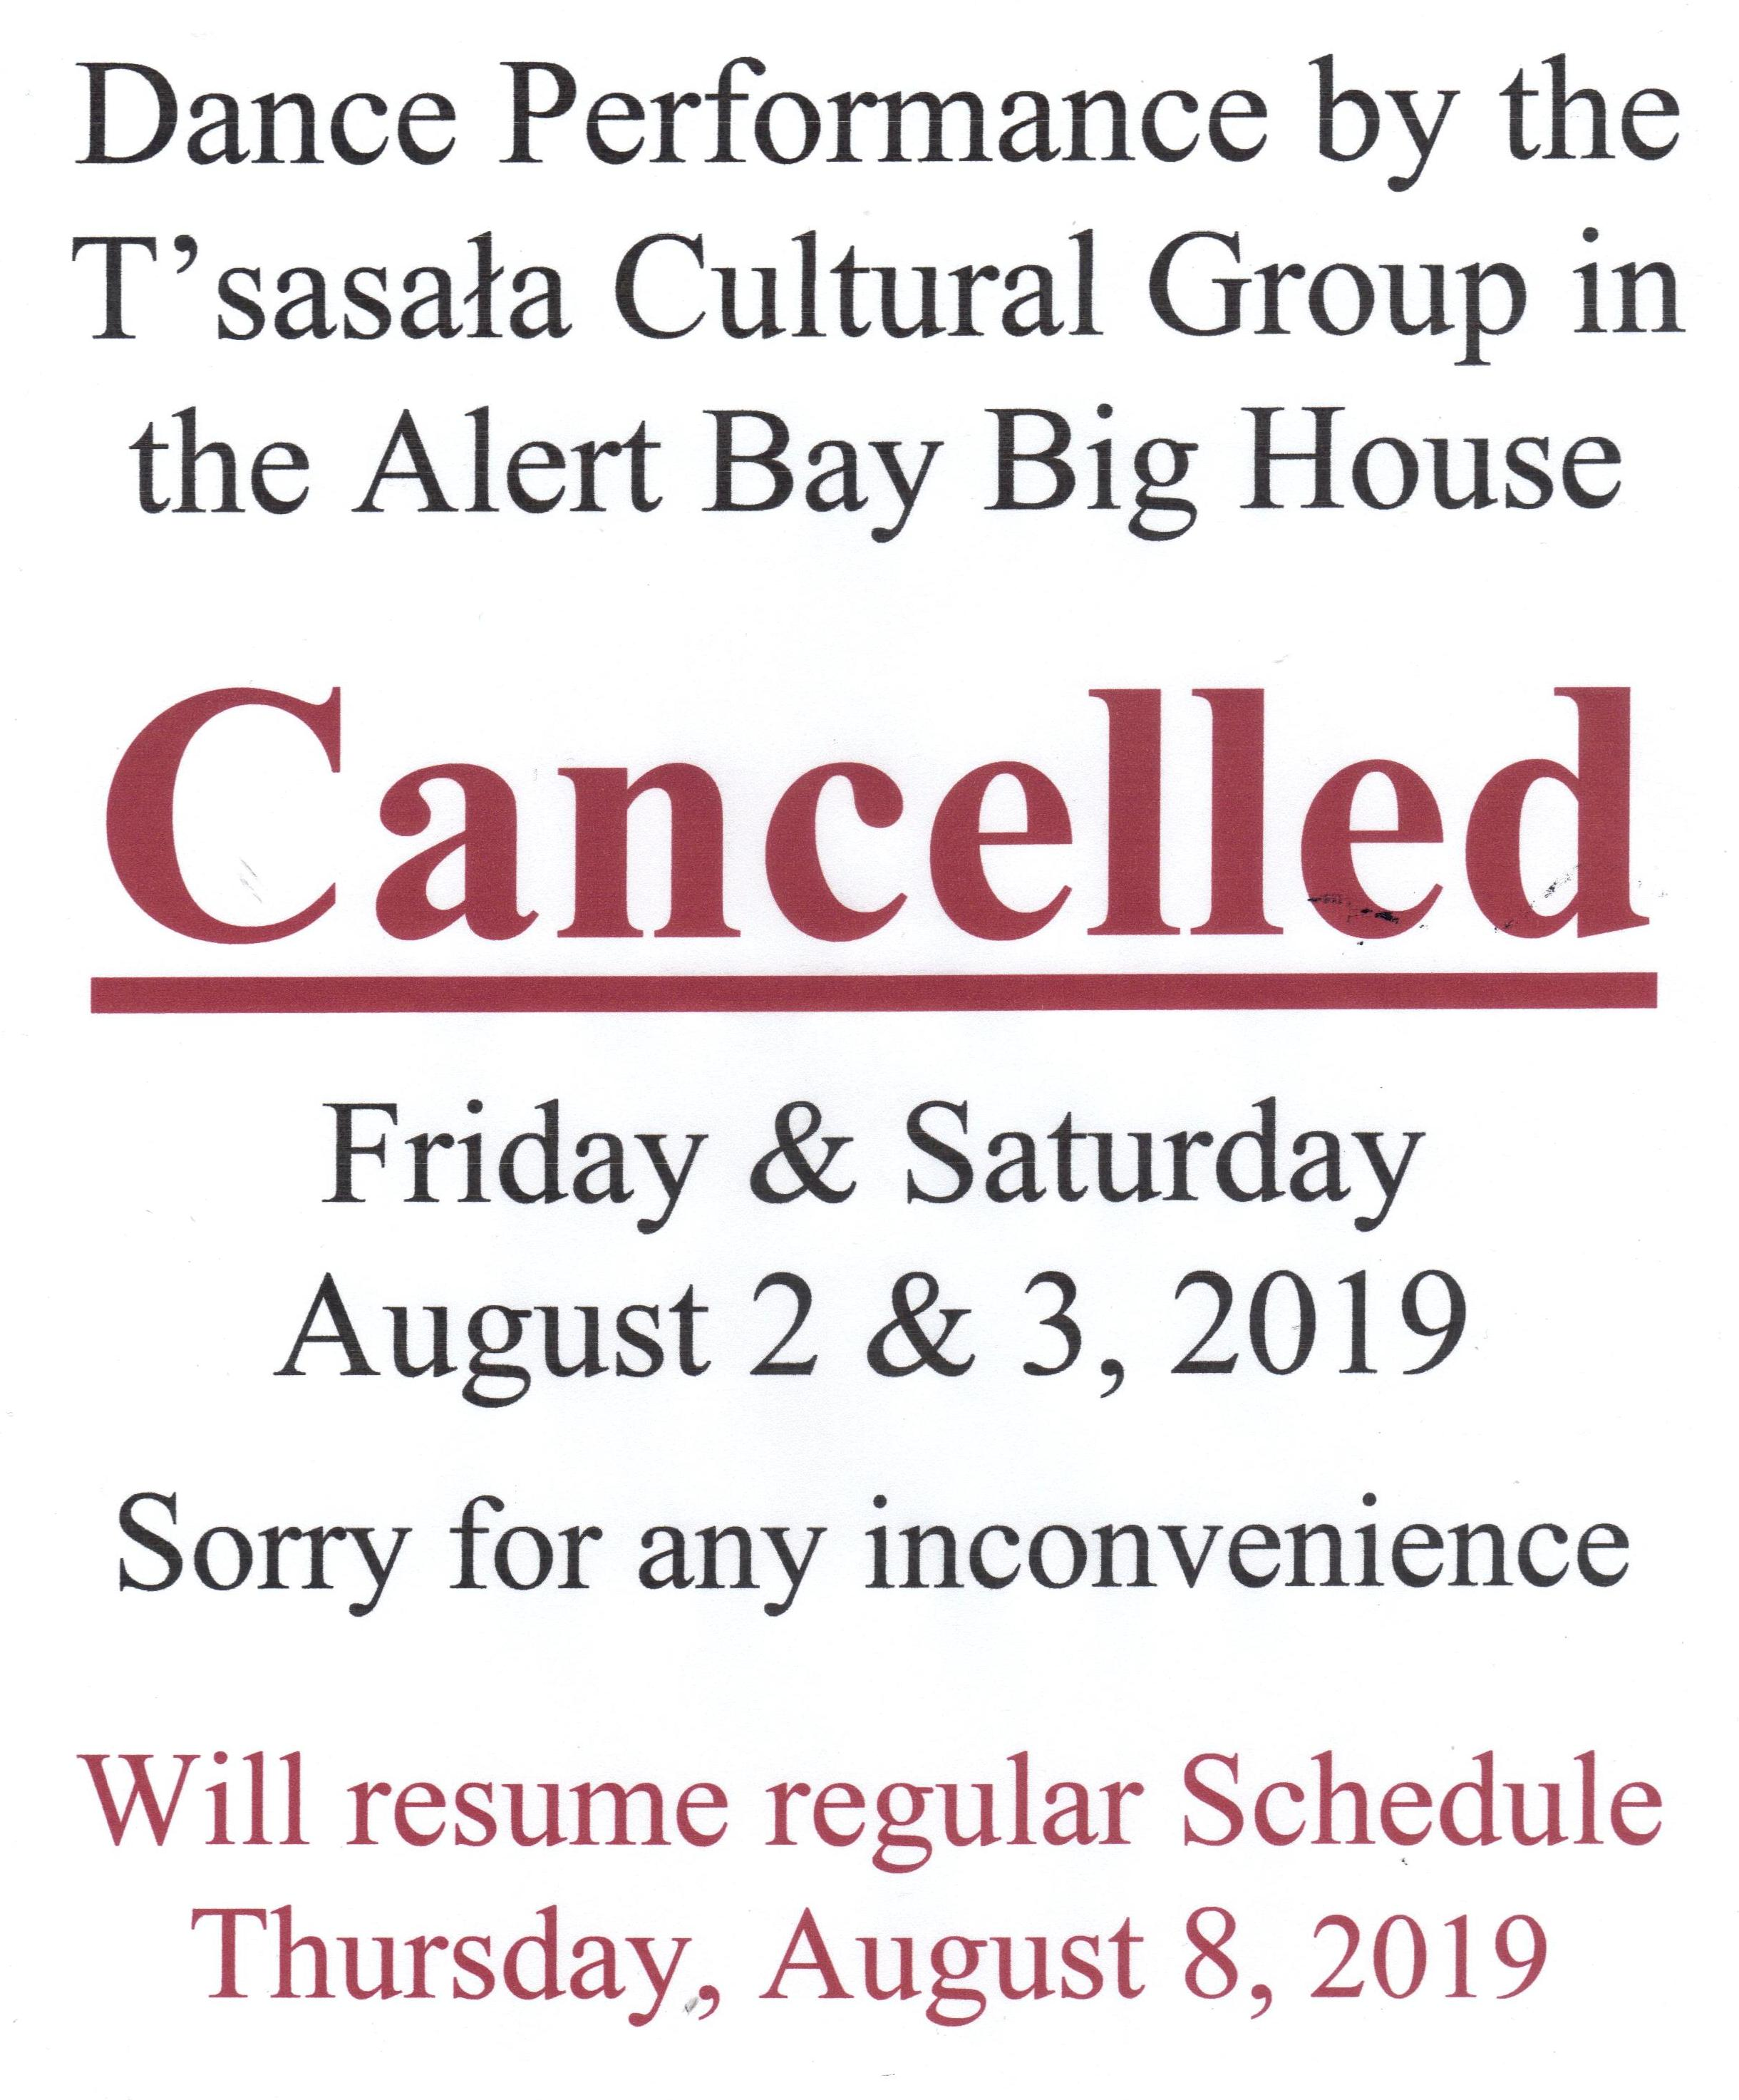 Dancing Cancelled August 2 and 3, 2019.jpg